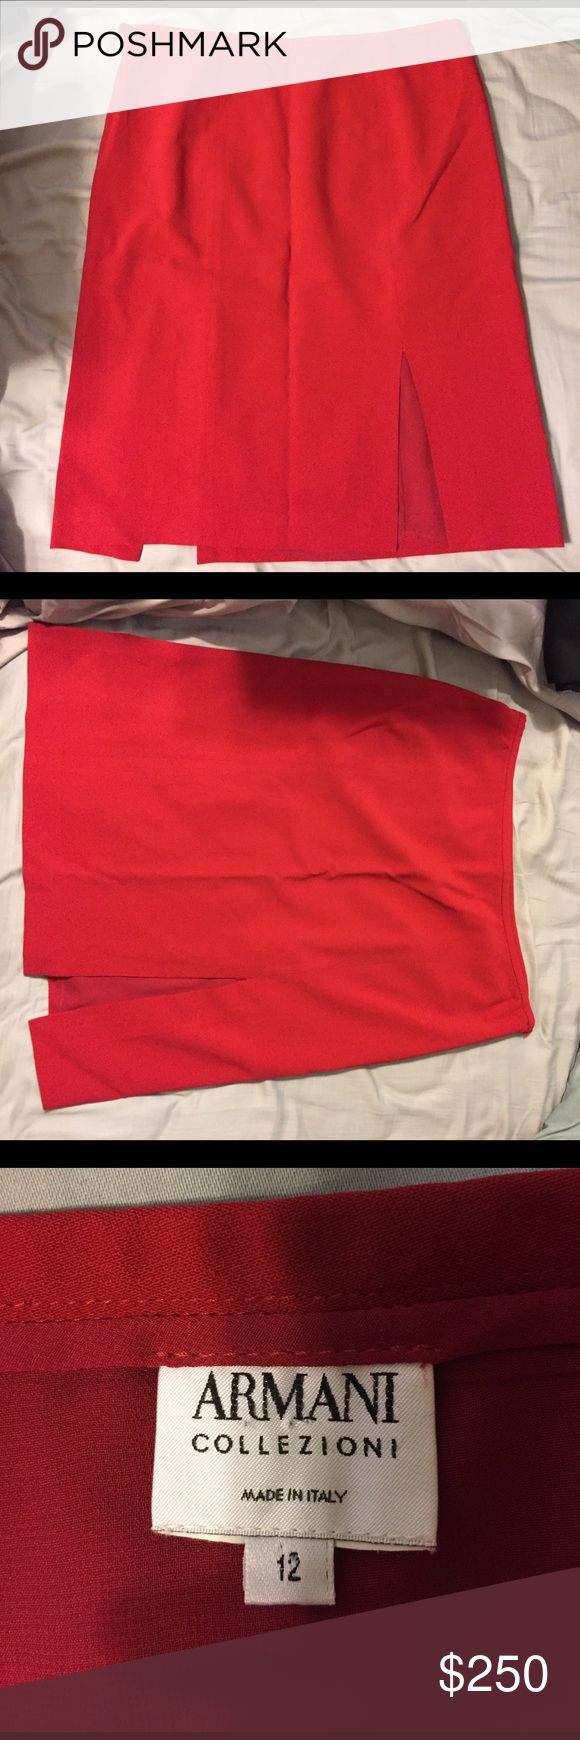 Armani Red Skirt Size 12 Authentic Armani, Red pencil skirt with double slits Armani Collezioni Skirts Pencil